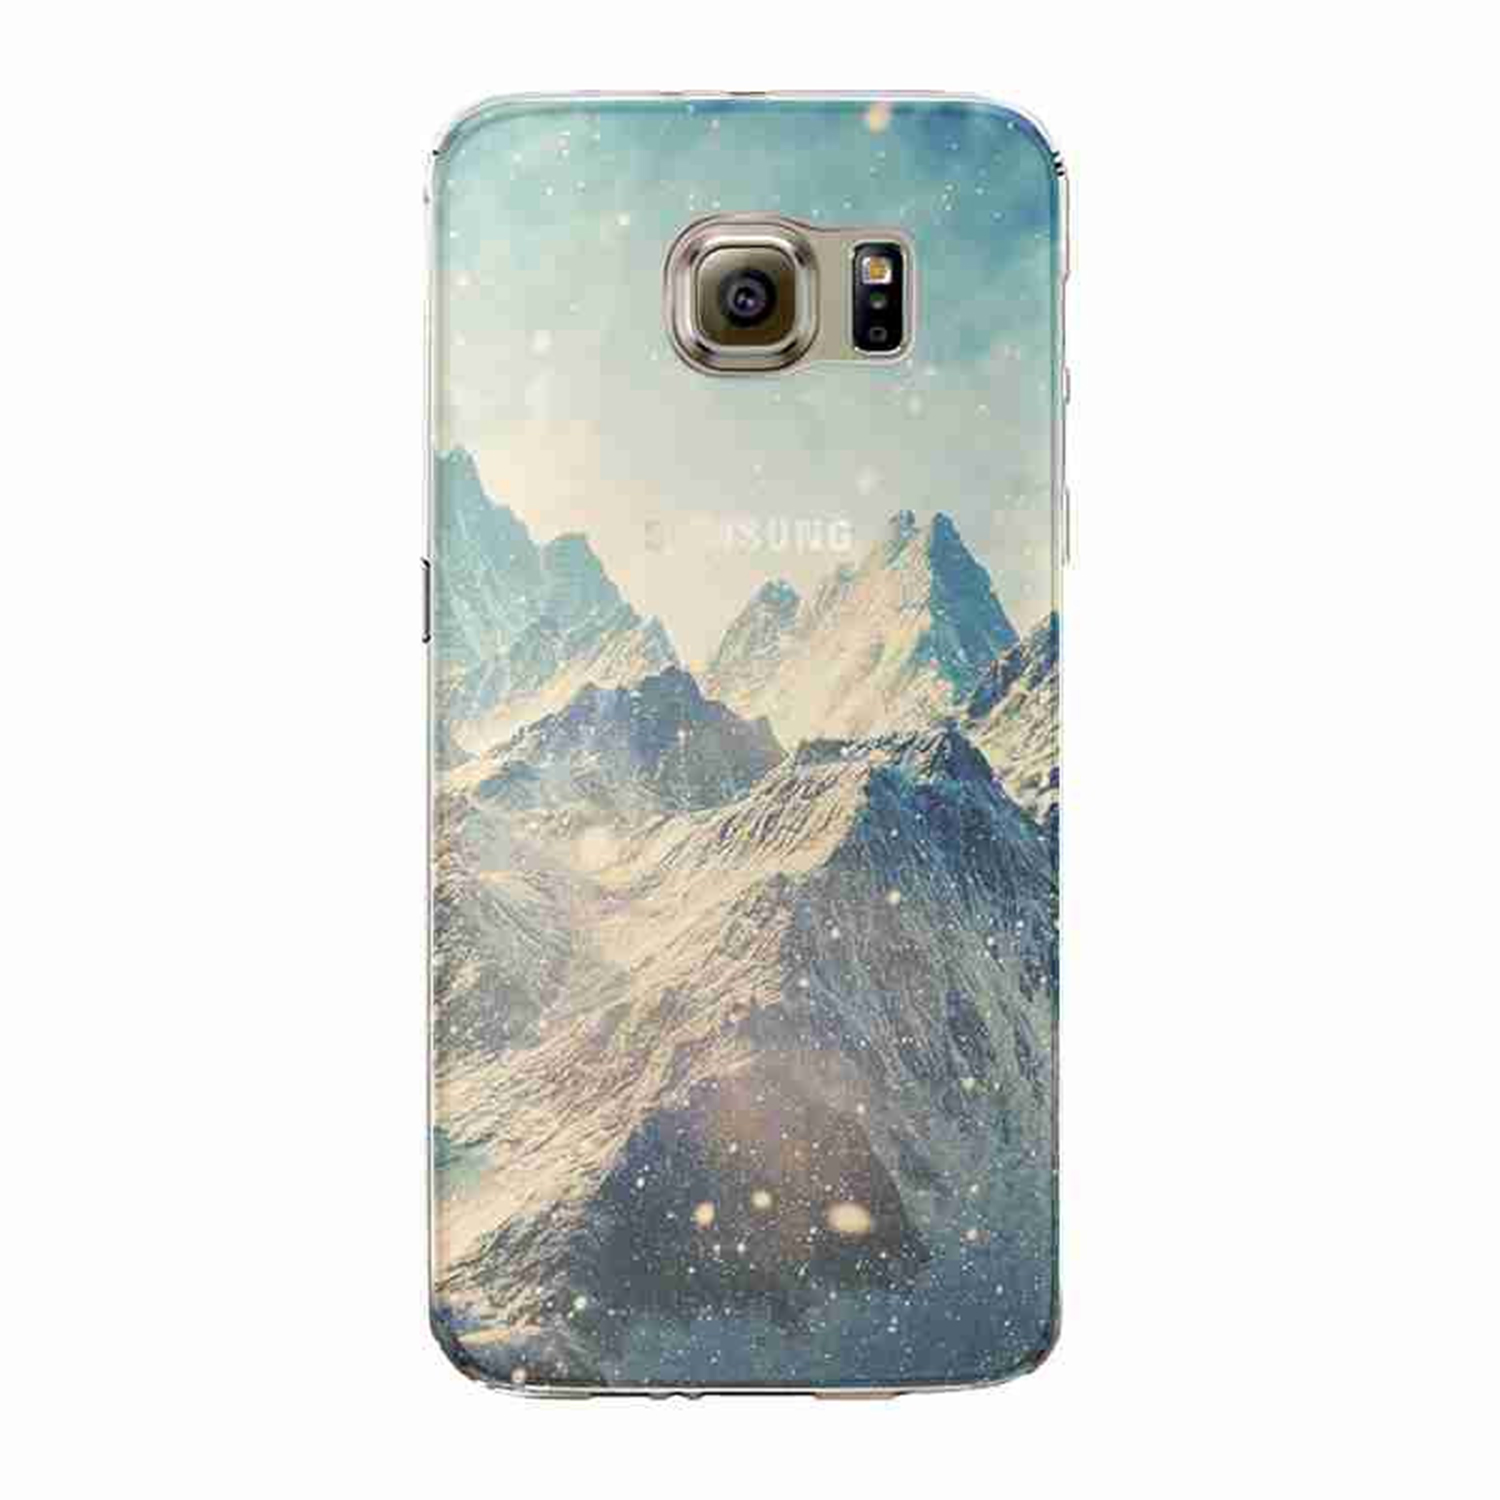 Kritzel Case Collection Galaxy S7 - Nature #252